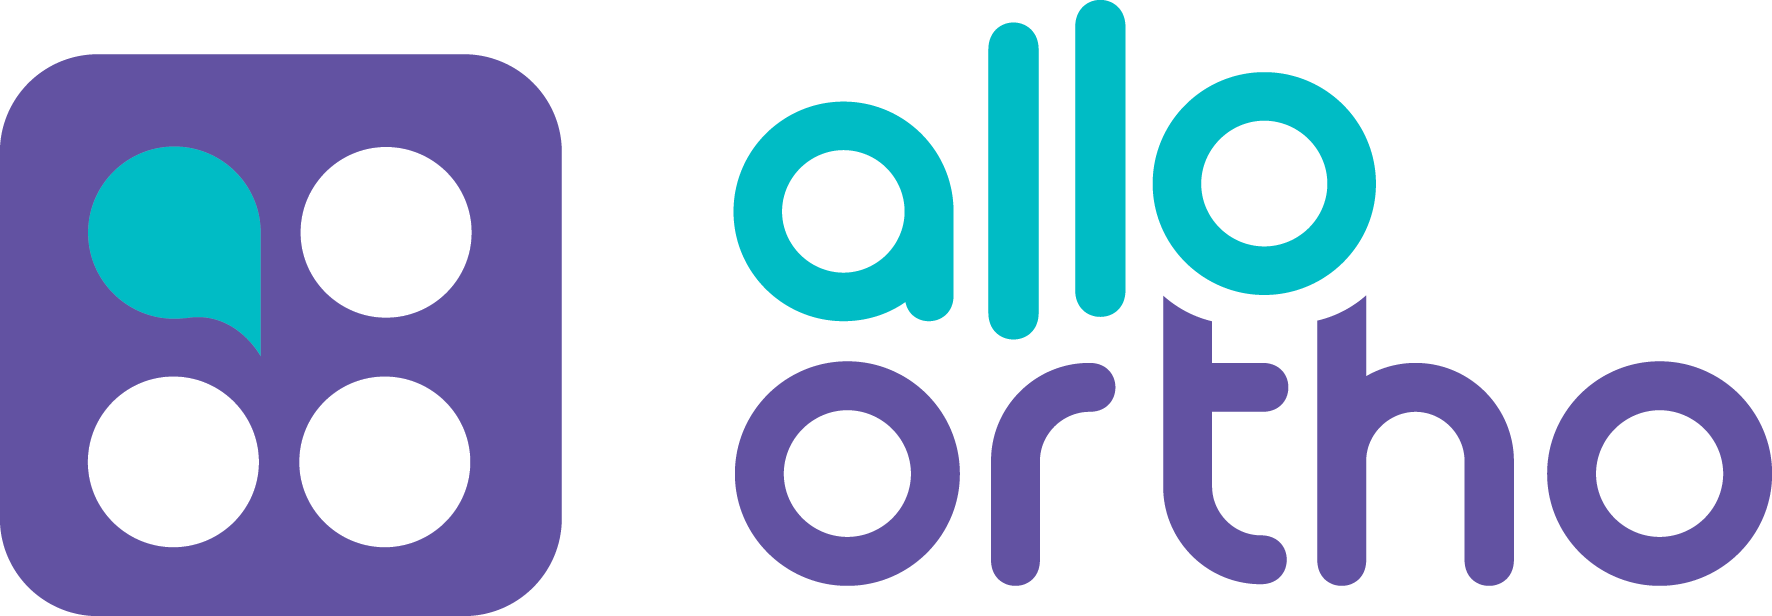 logo allor ortho